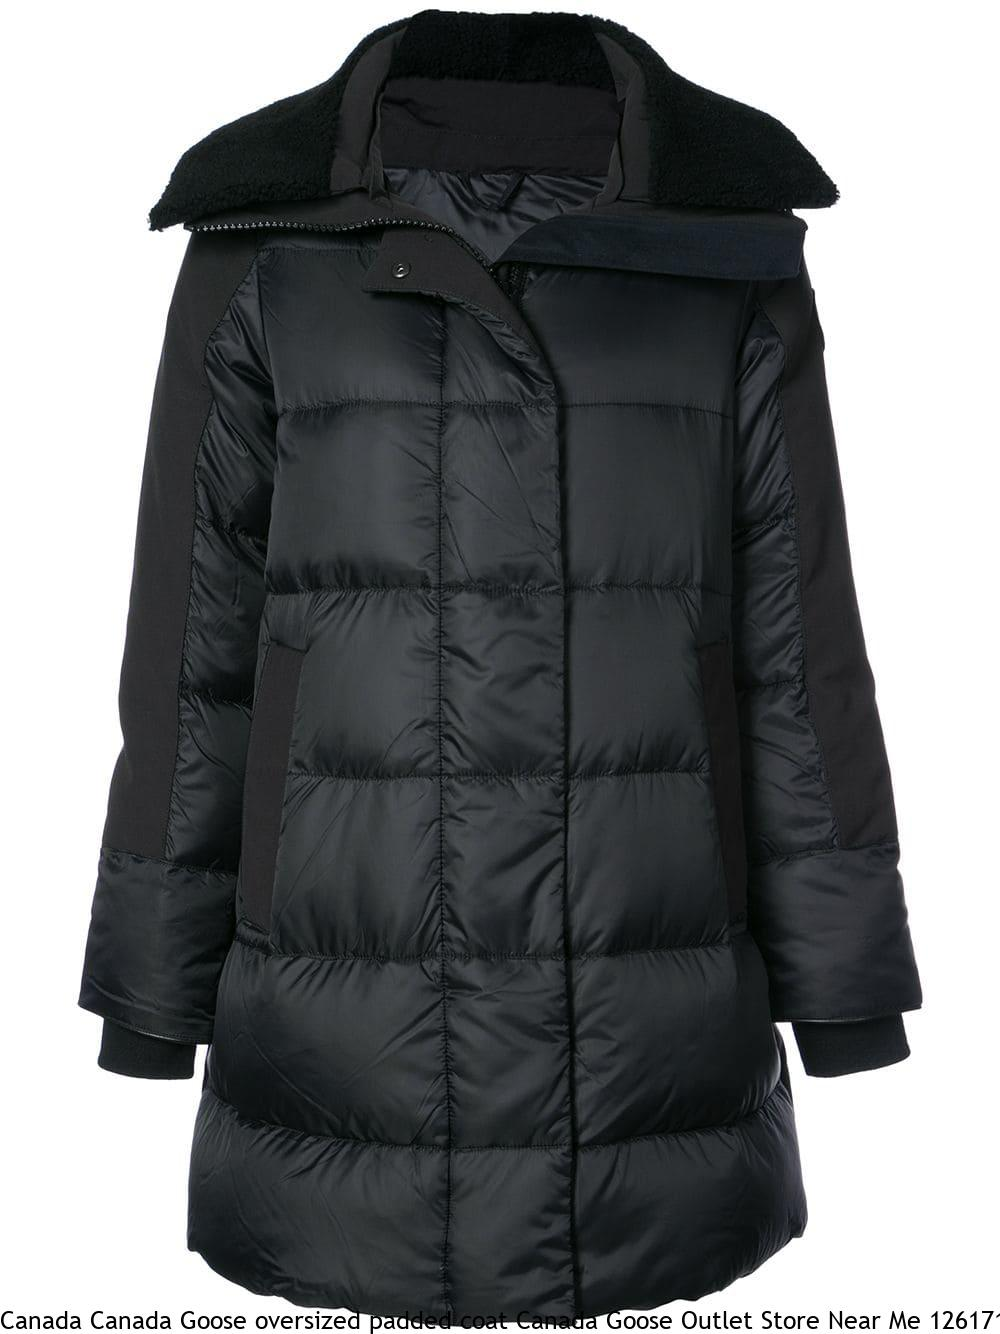 b467759e5e1 Canada Canada Goose oversized padded coat Canada Goose Outlet Store Near Me  12617152